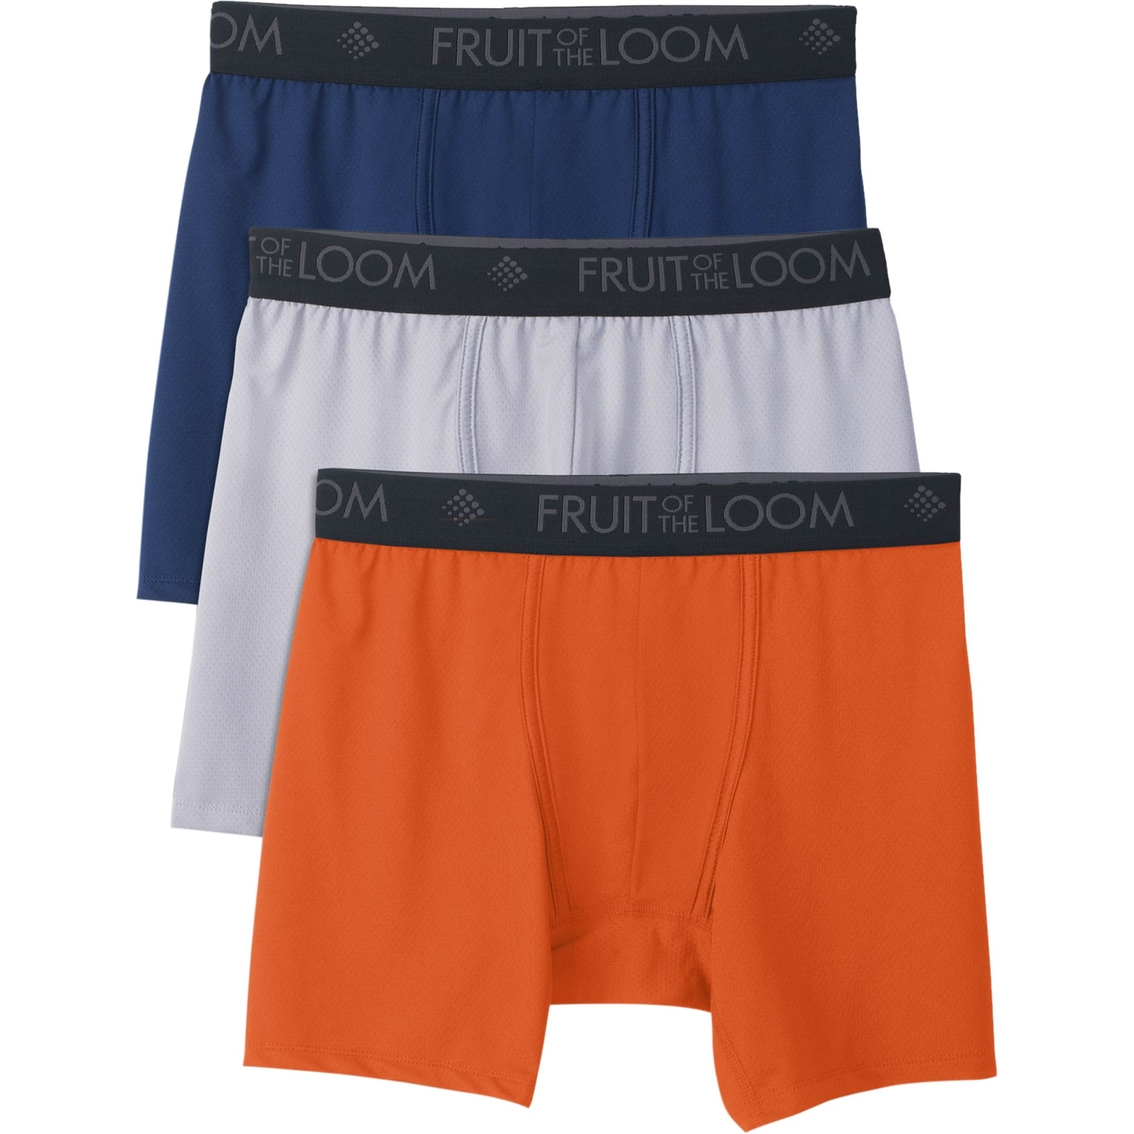 06b9c1474998 Fruit of the Loom Breathable Lightweight Micro Mesh Short Leg Boxer Brief 3  pk.